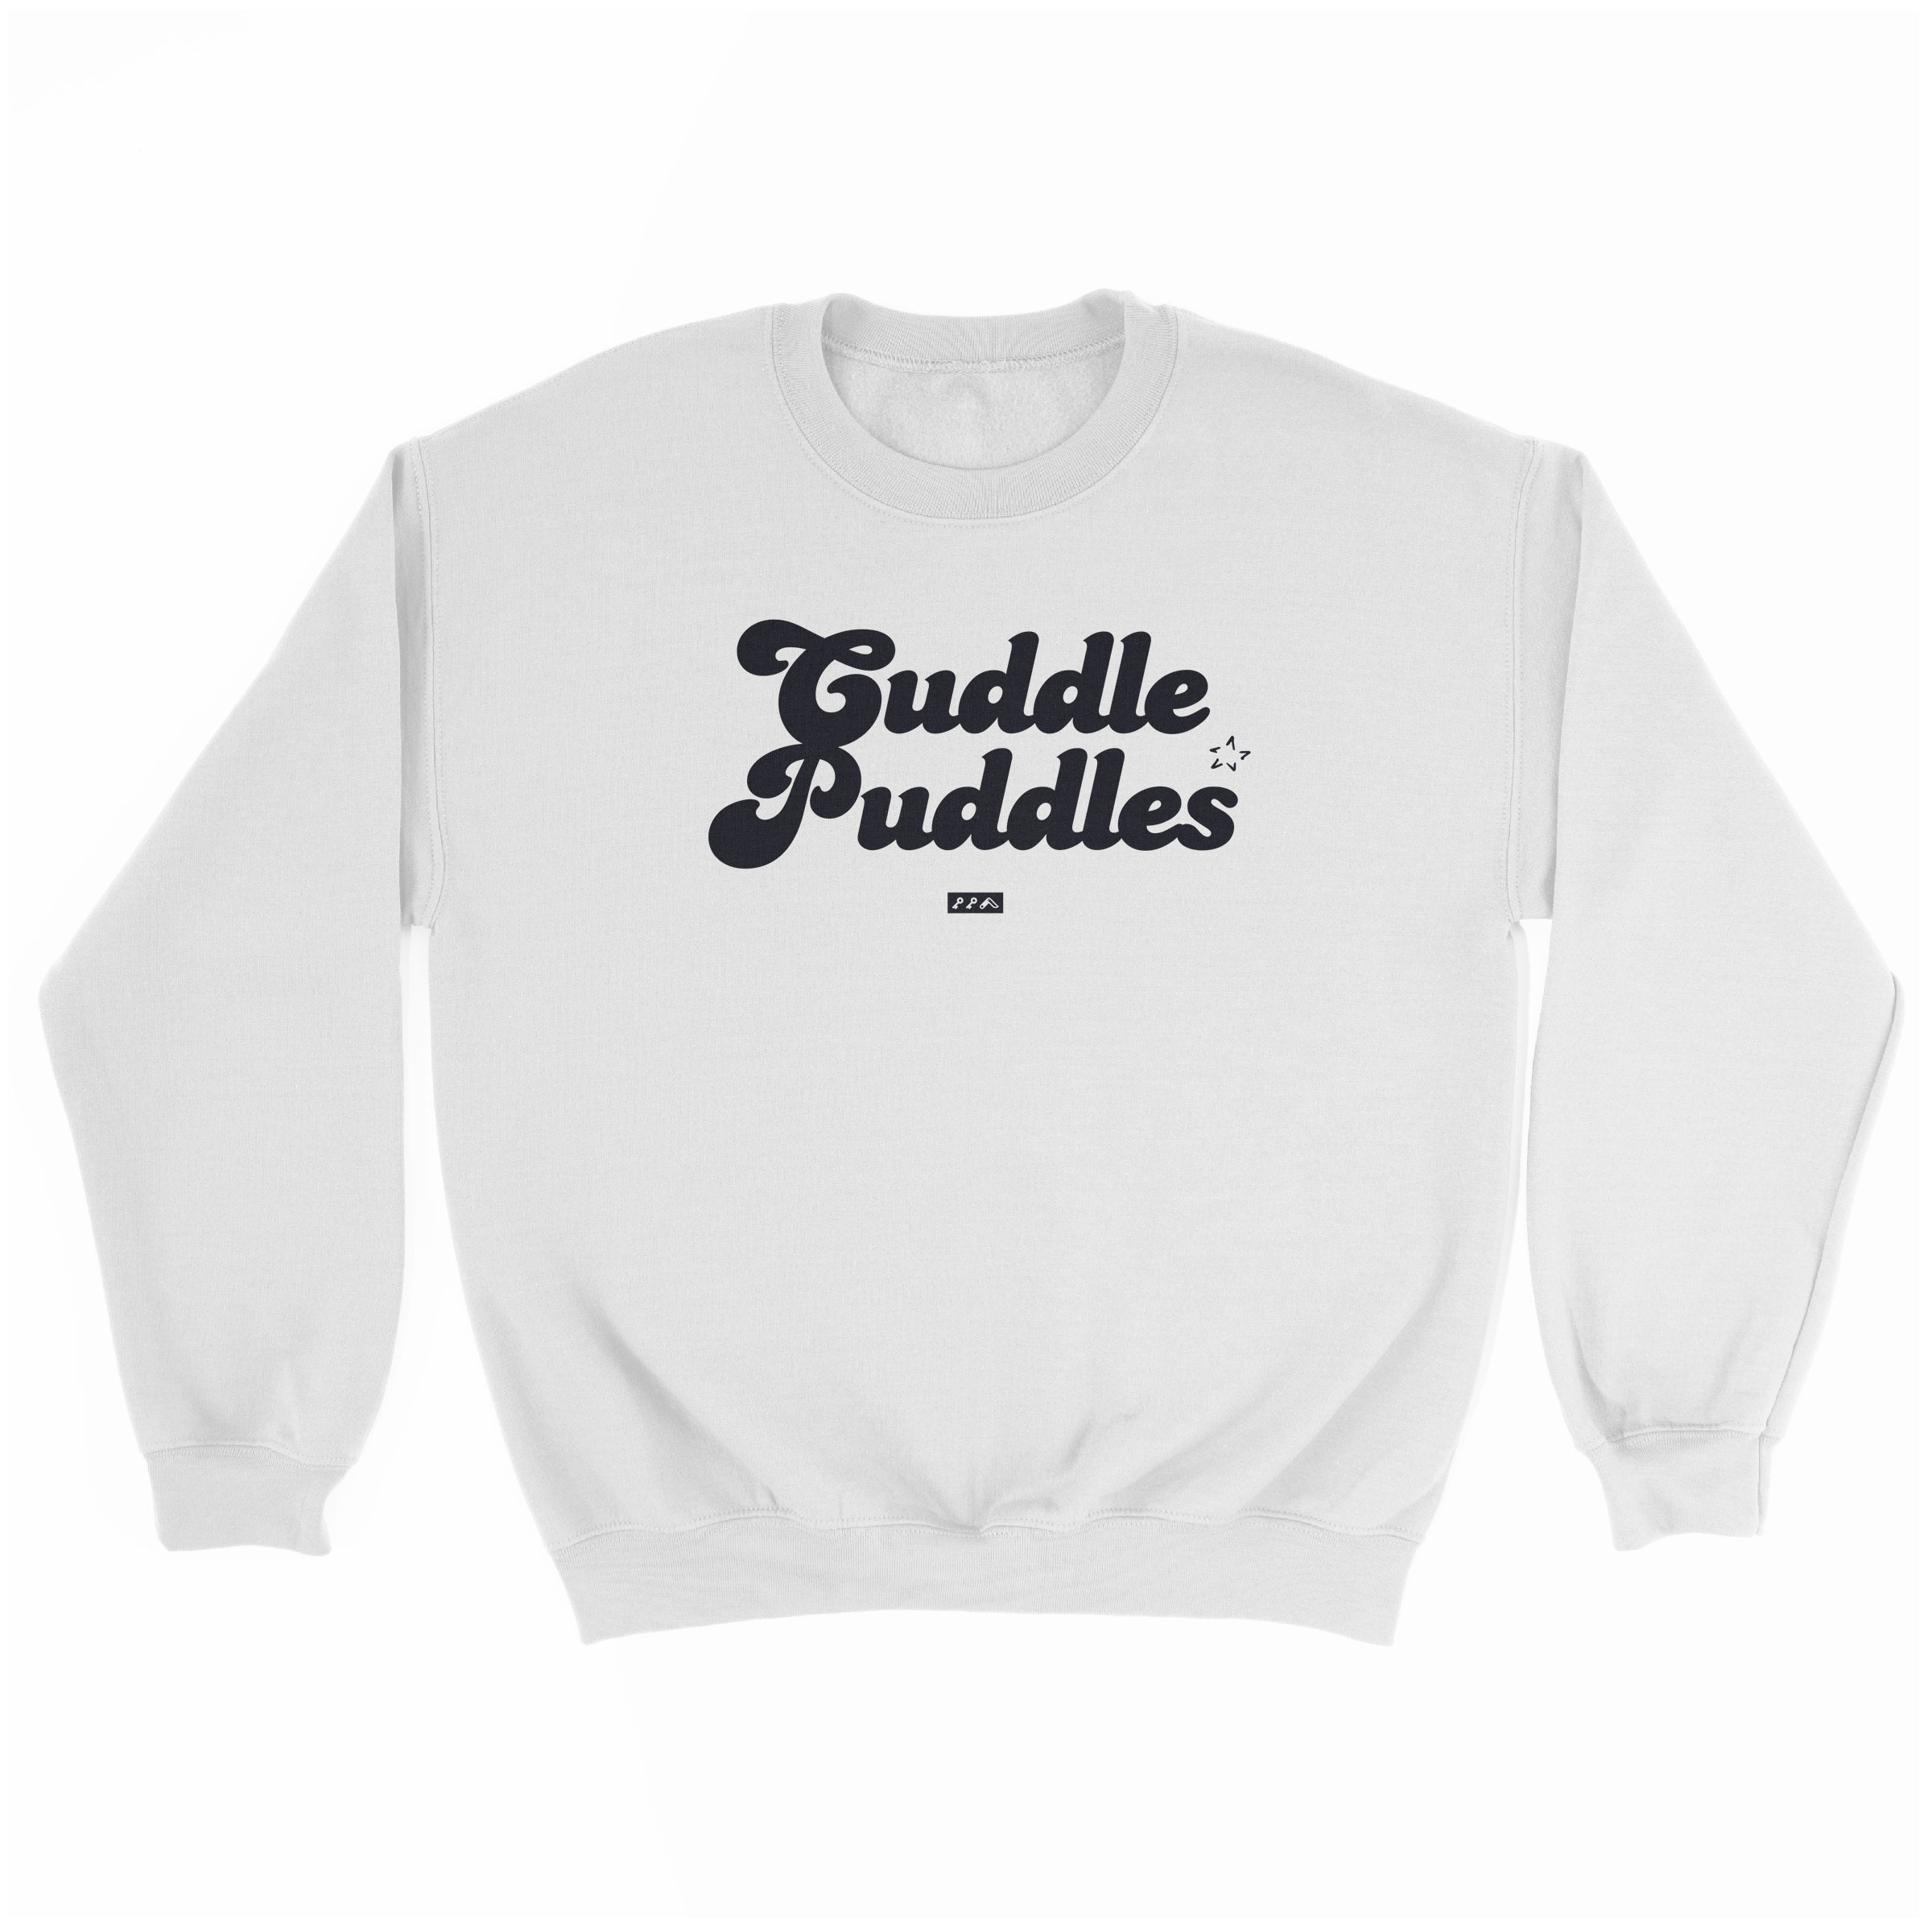 CUDDLE PUDDLE PARTY comfy sweatshirt in white at kikicutt.com